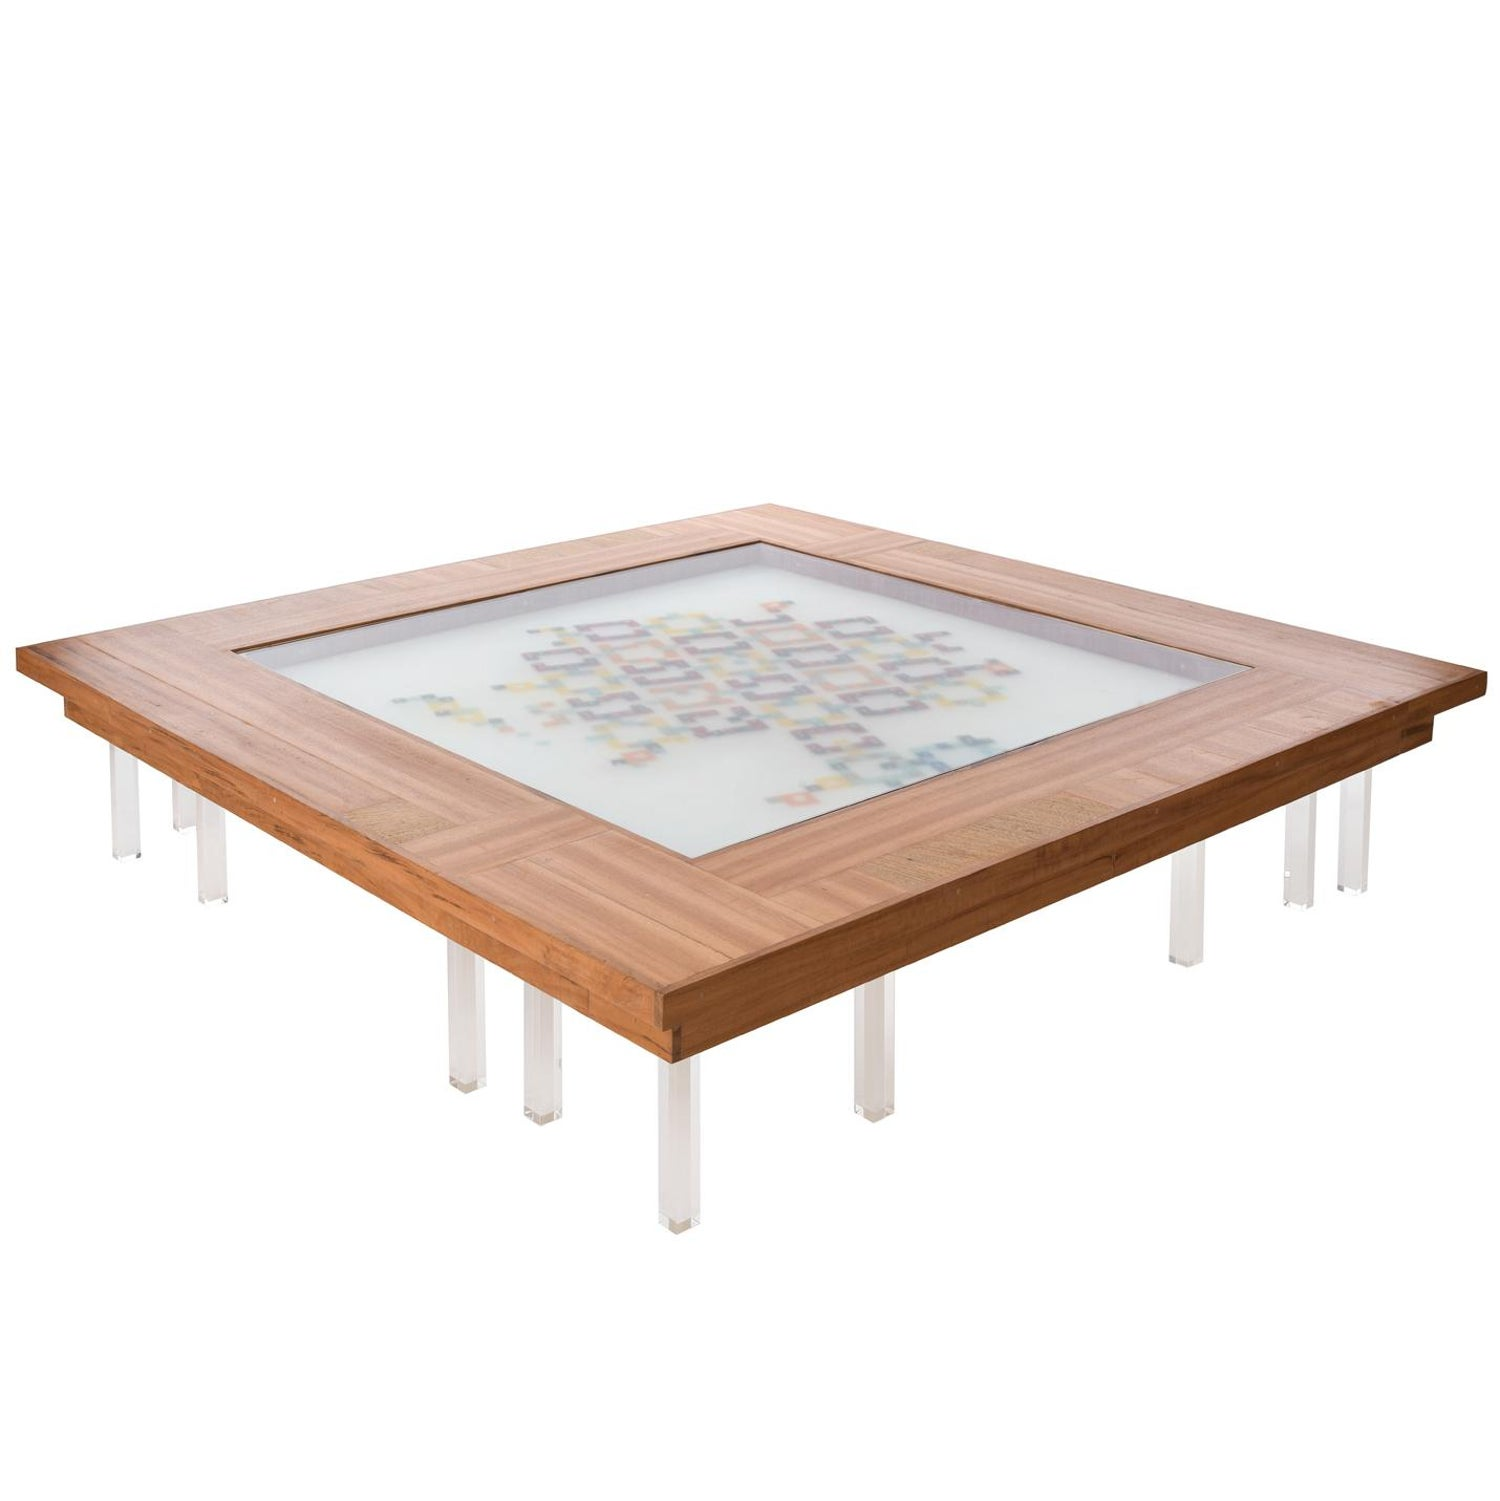 Contemporary colored mosaiced coffee table cobogó in wood acrylic glass resin for sale at 1stdibs